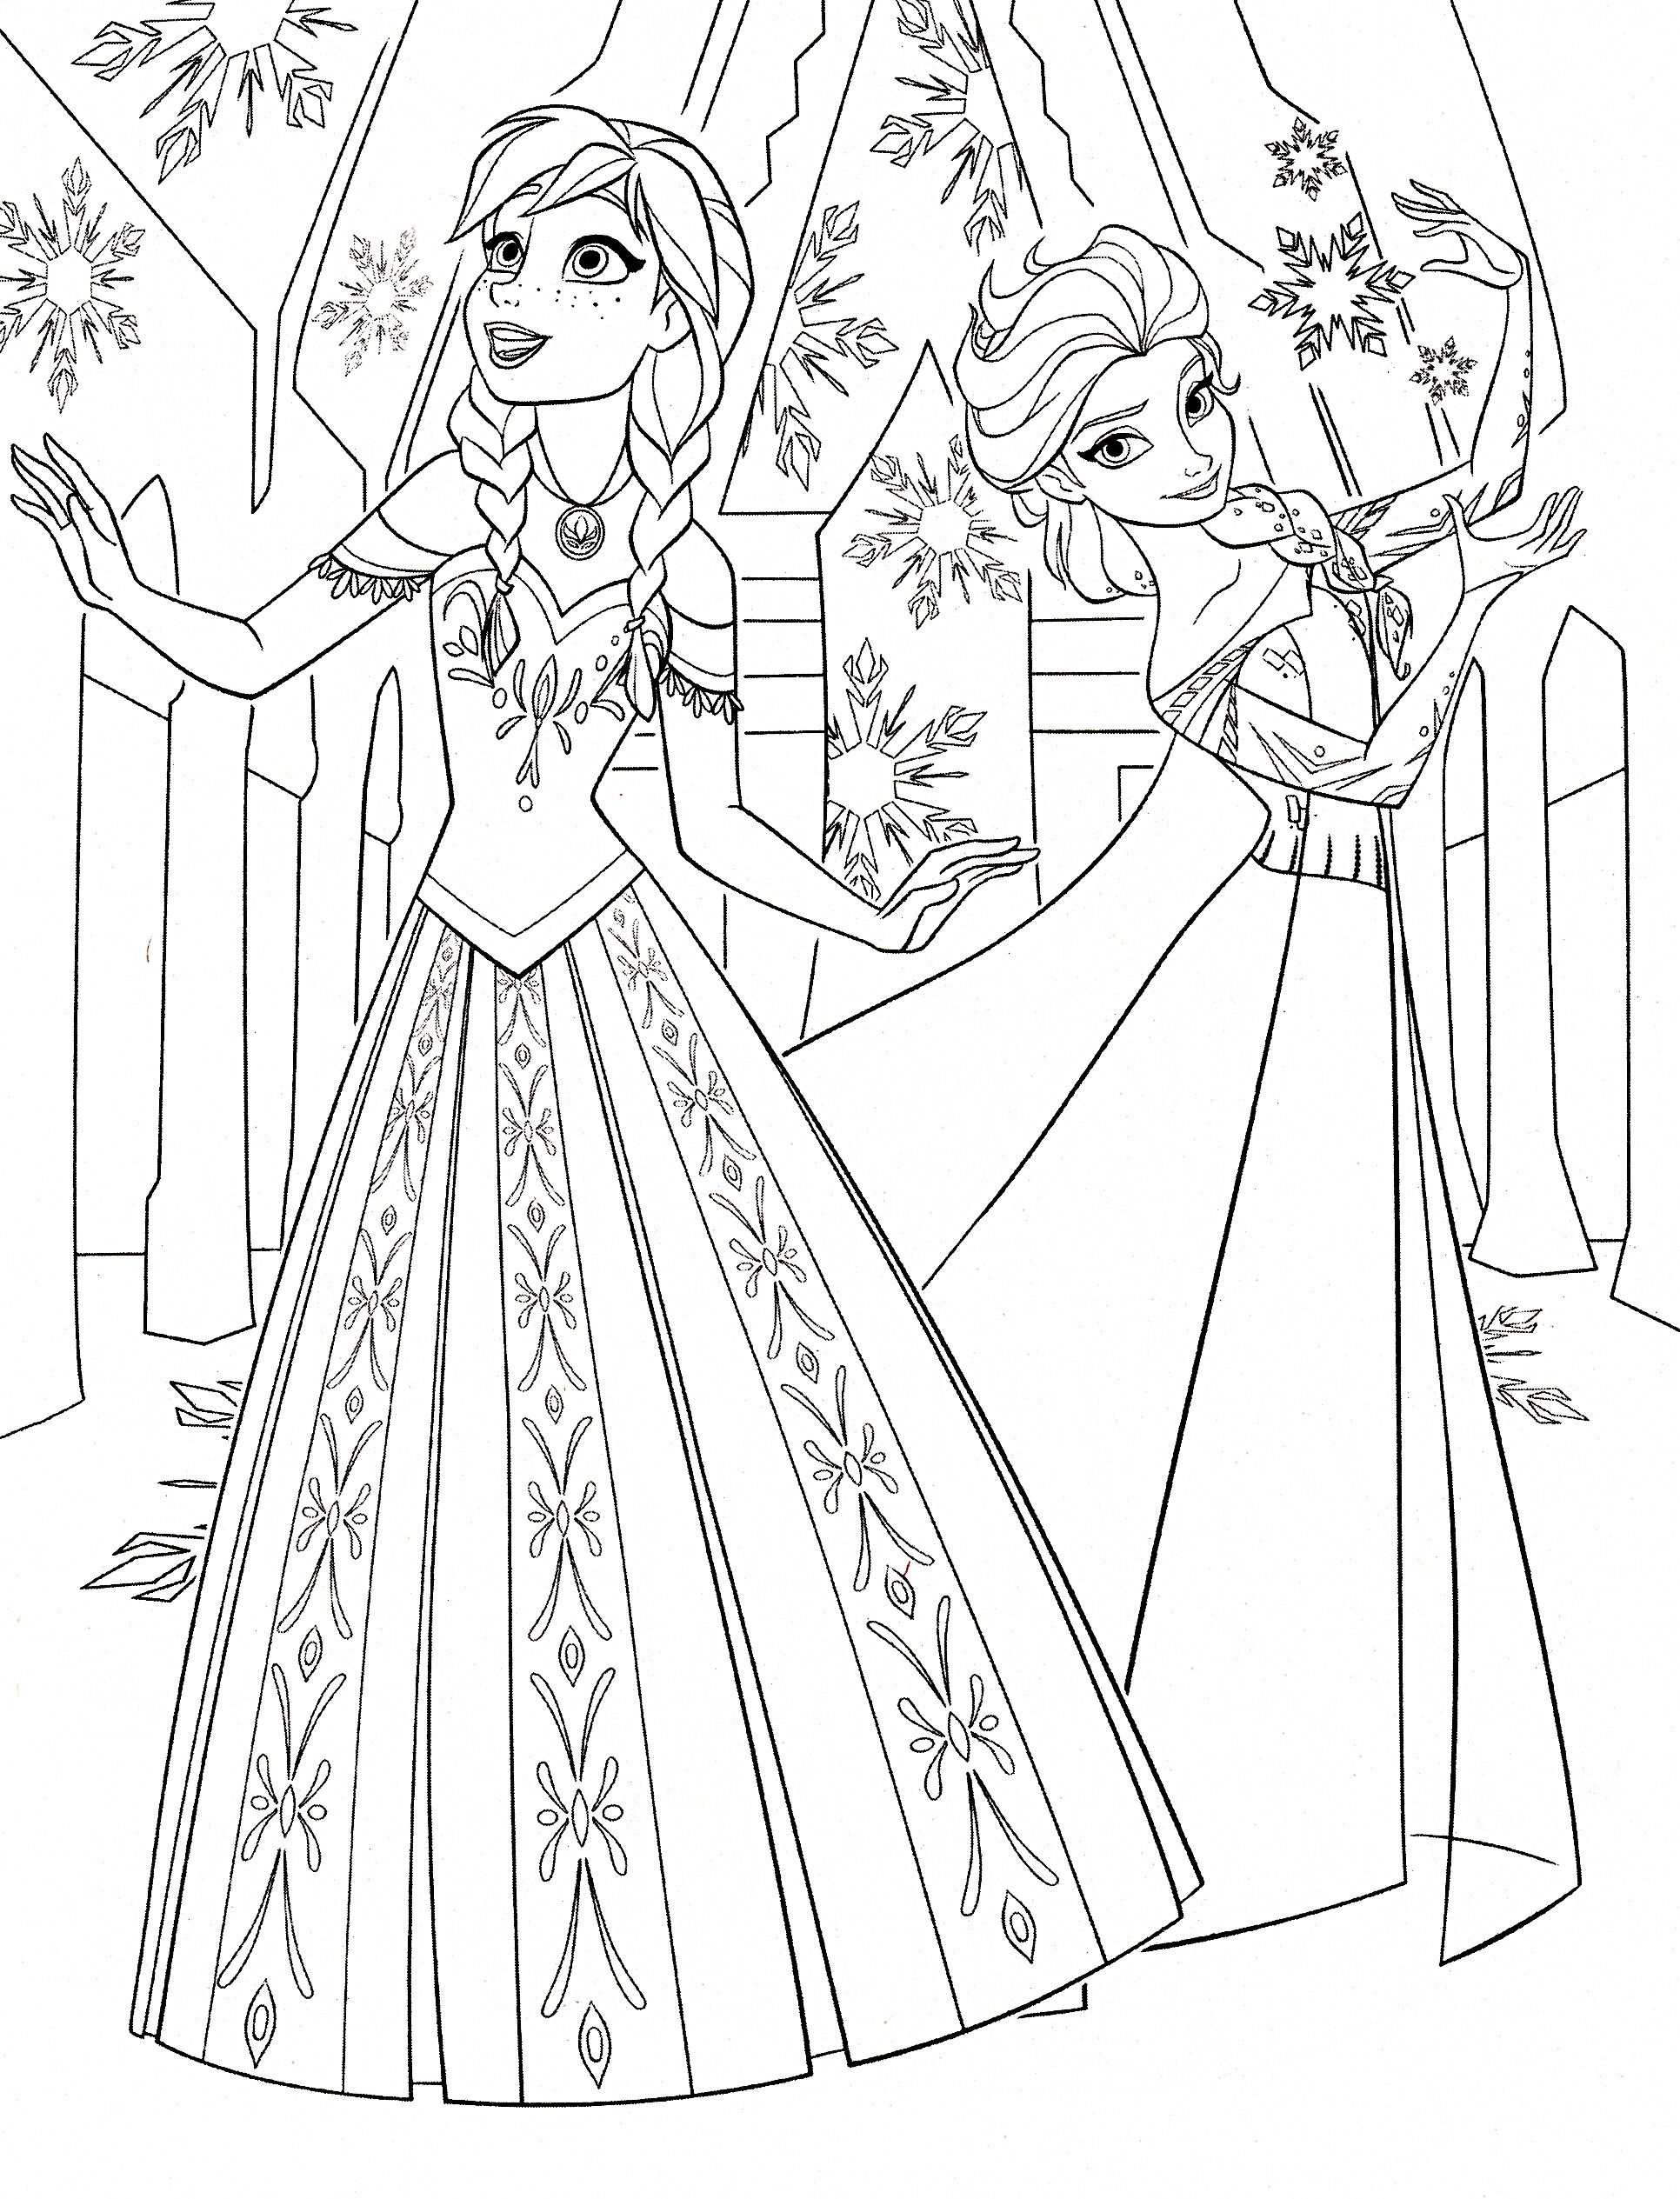 Full Size Frozen 2 Coloring Pages Elsa Hair Down